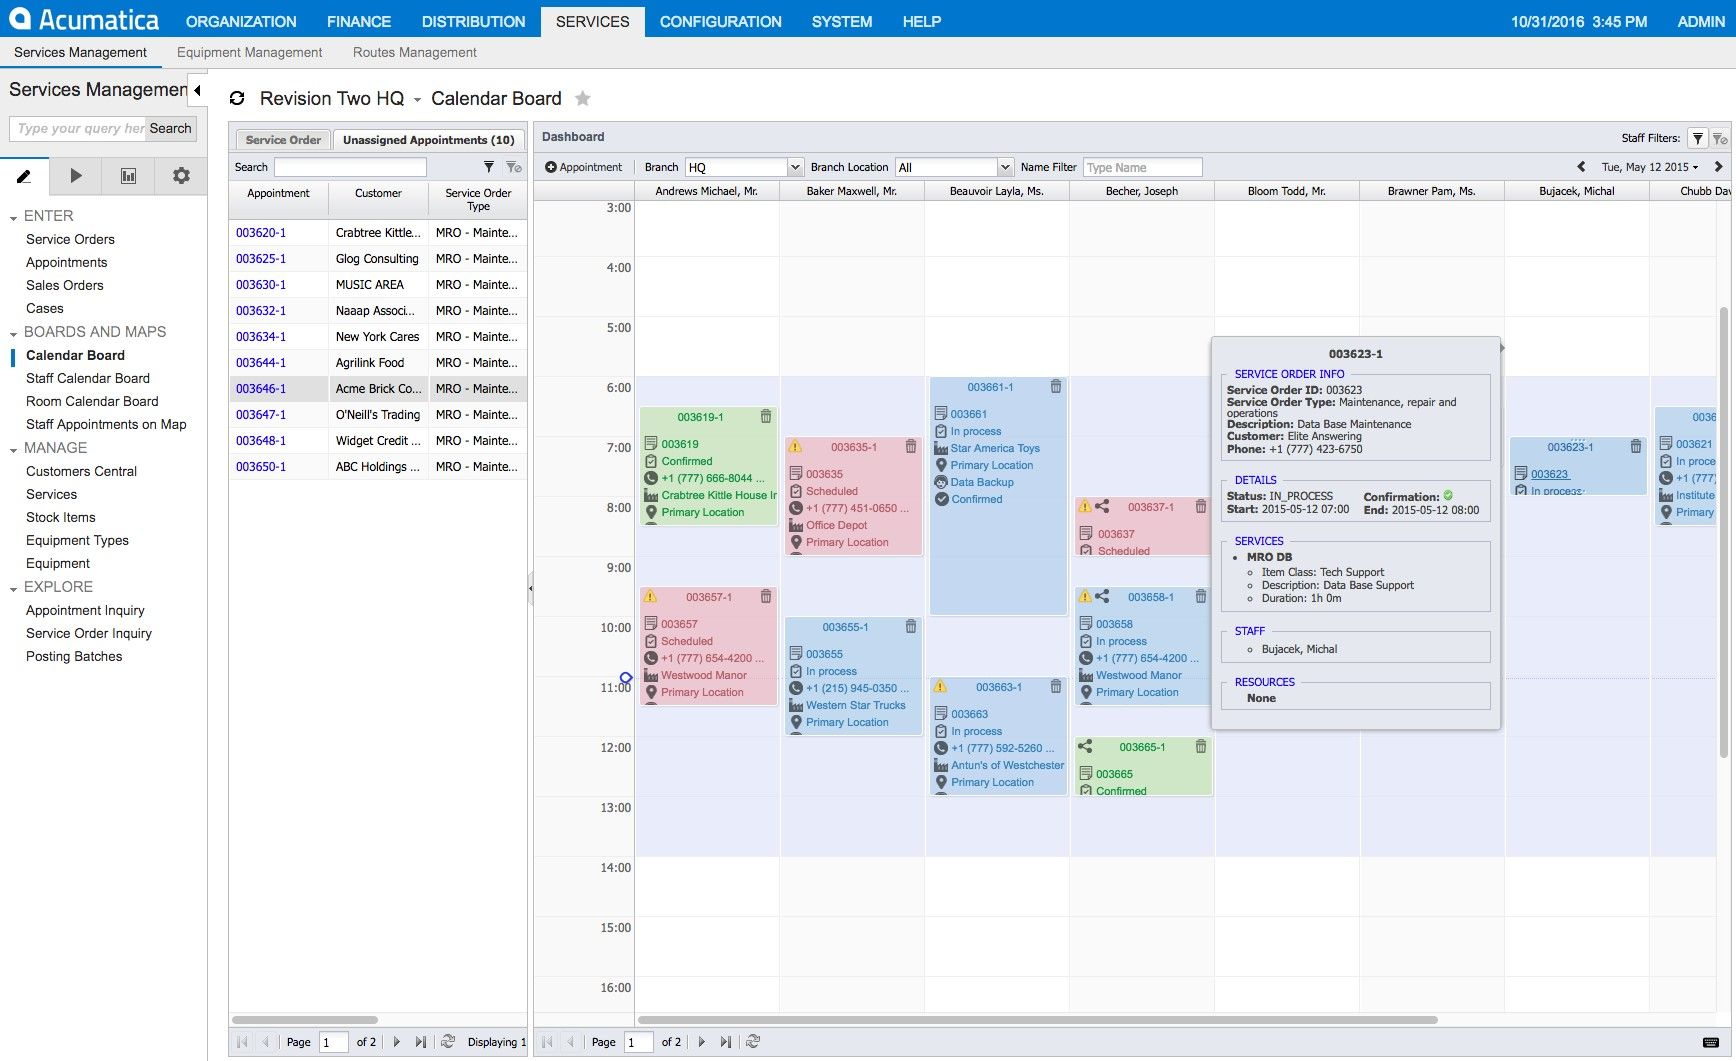 Acumatica Field Services Edition Webinar